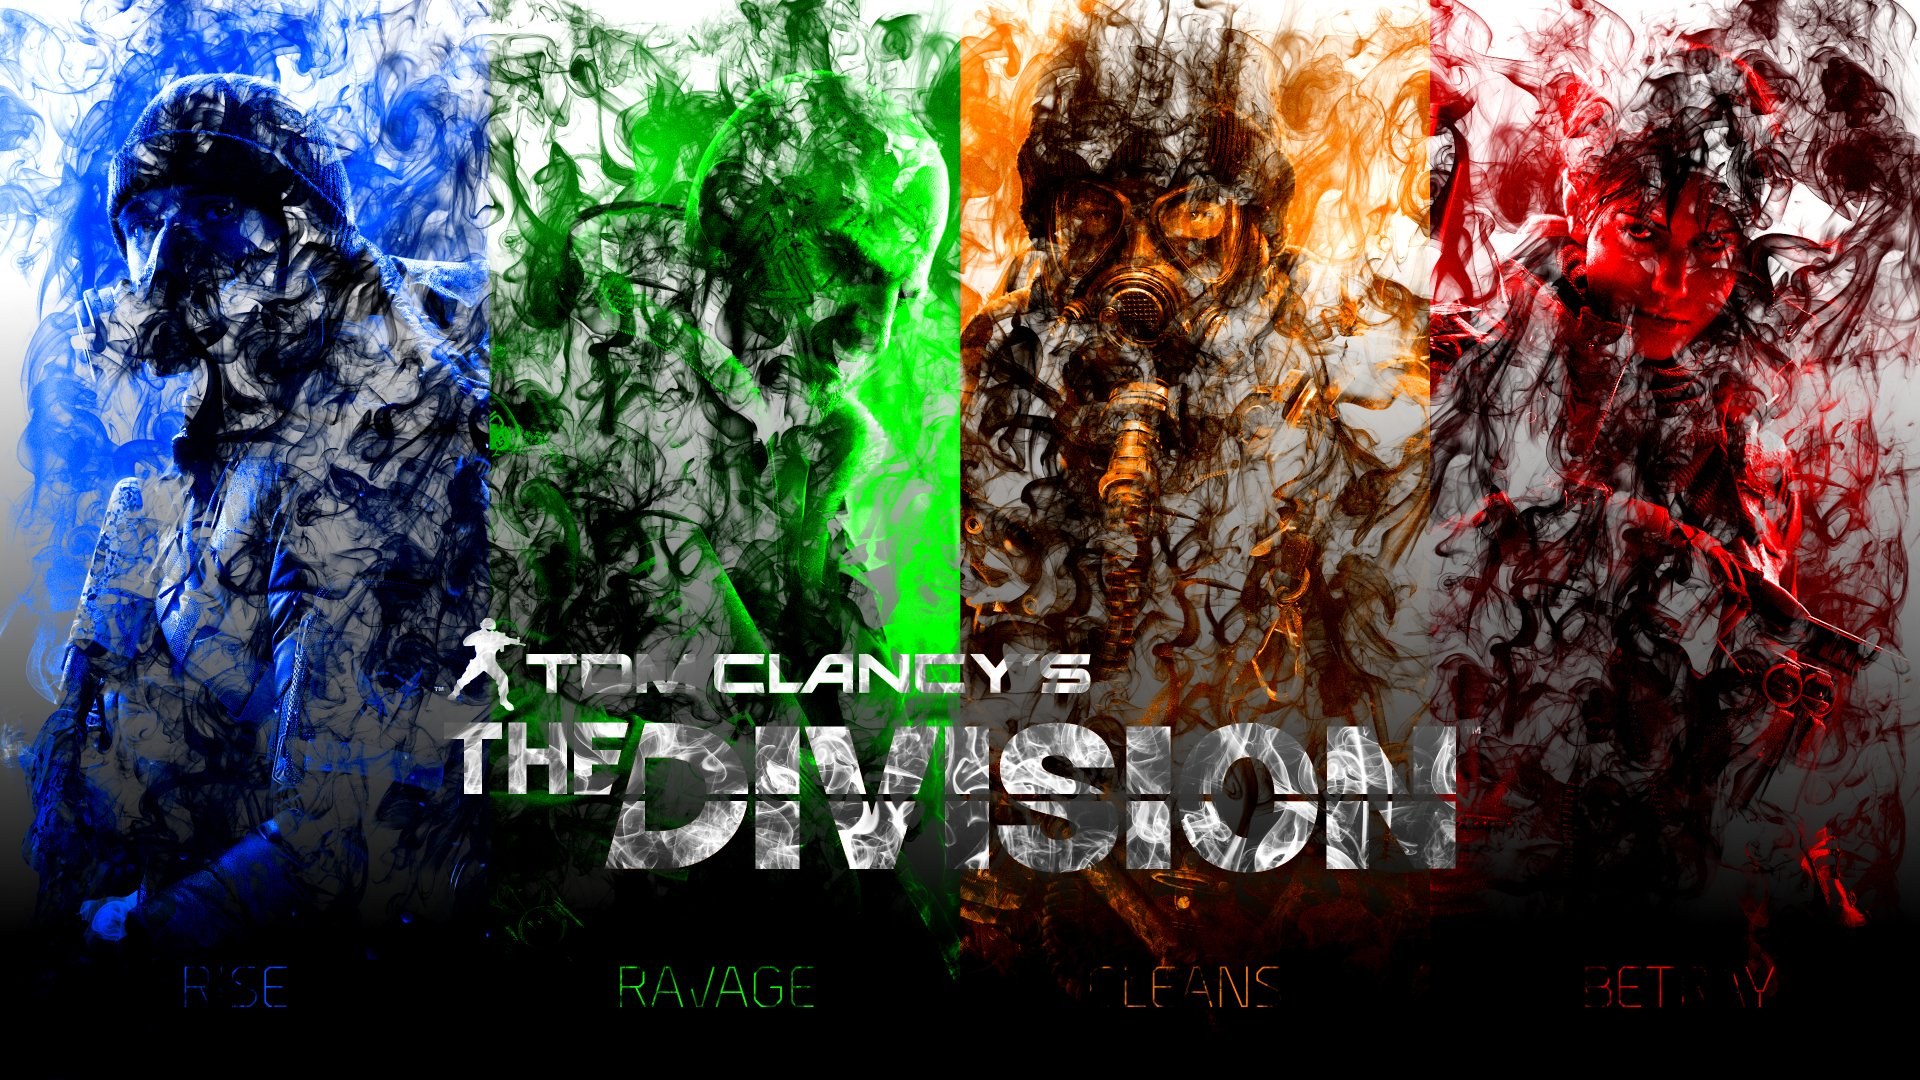 Video Game - Tom Clancy's The Division  Wallpaper